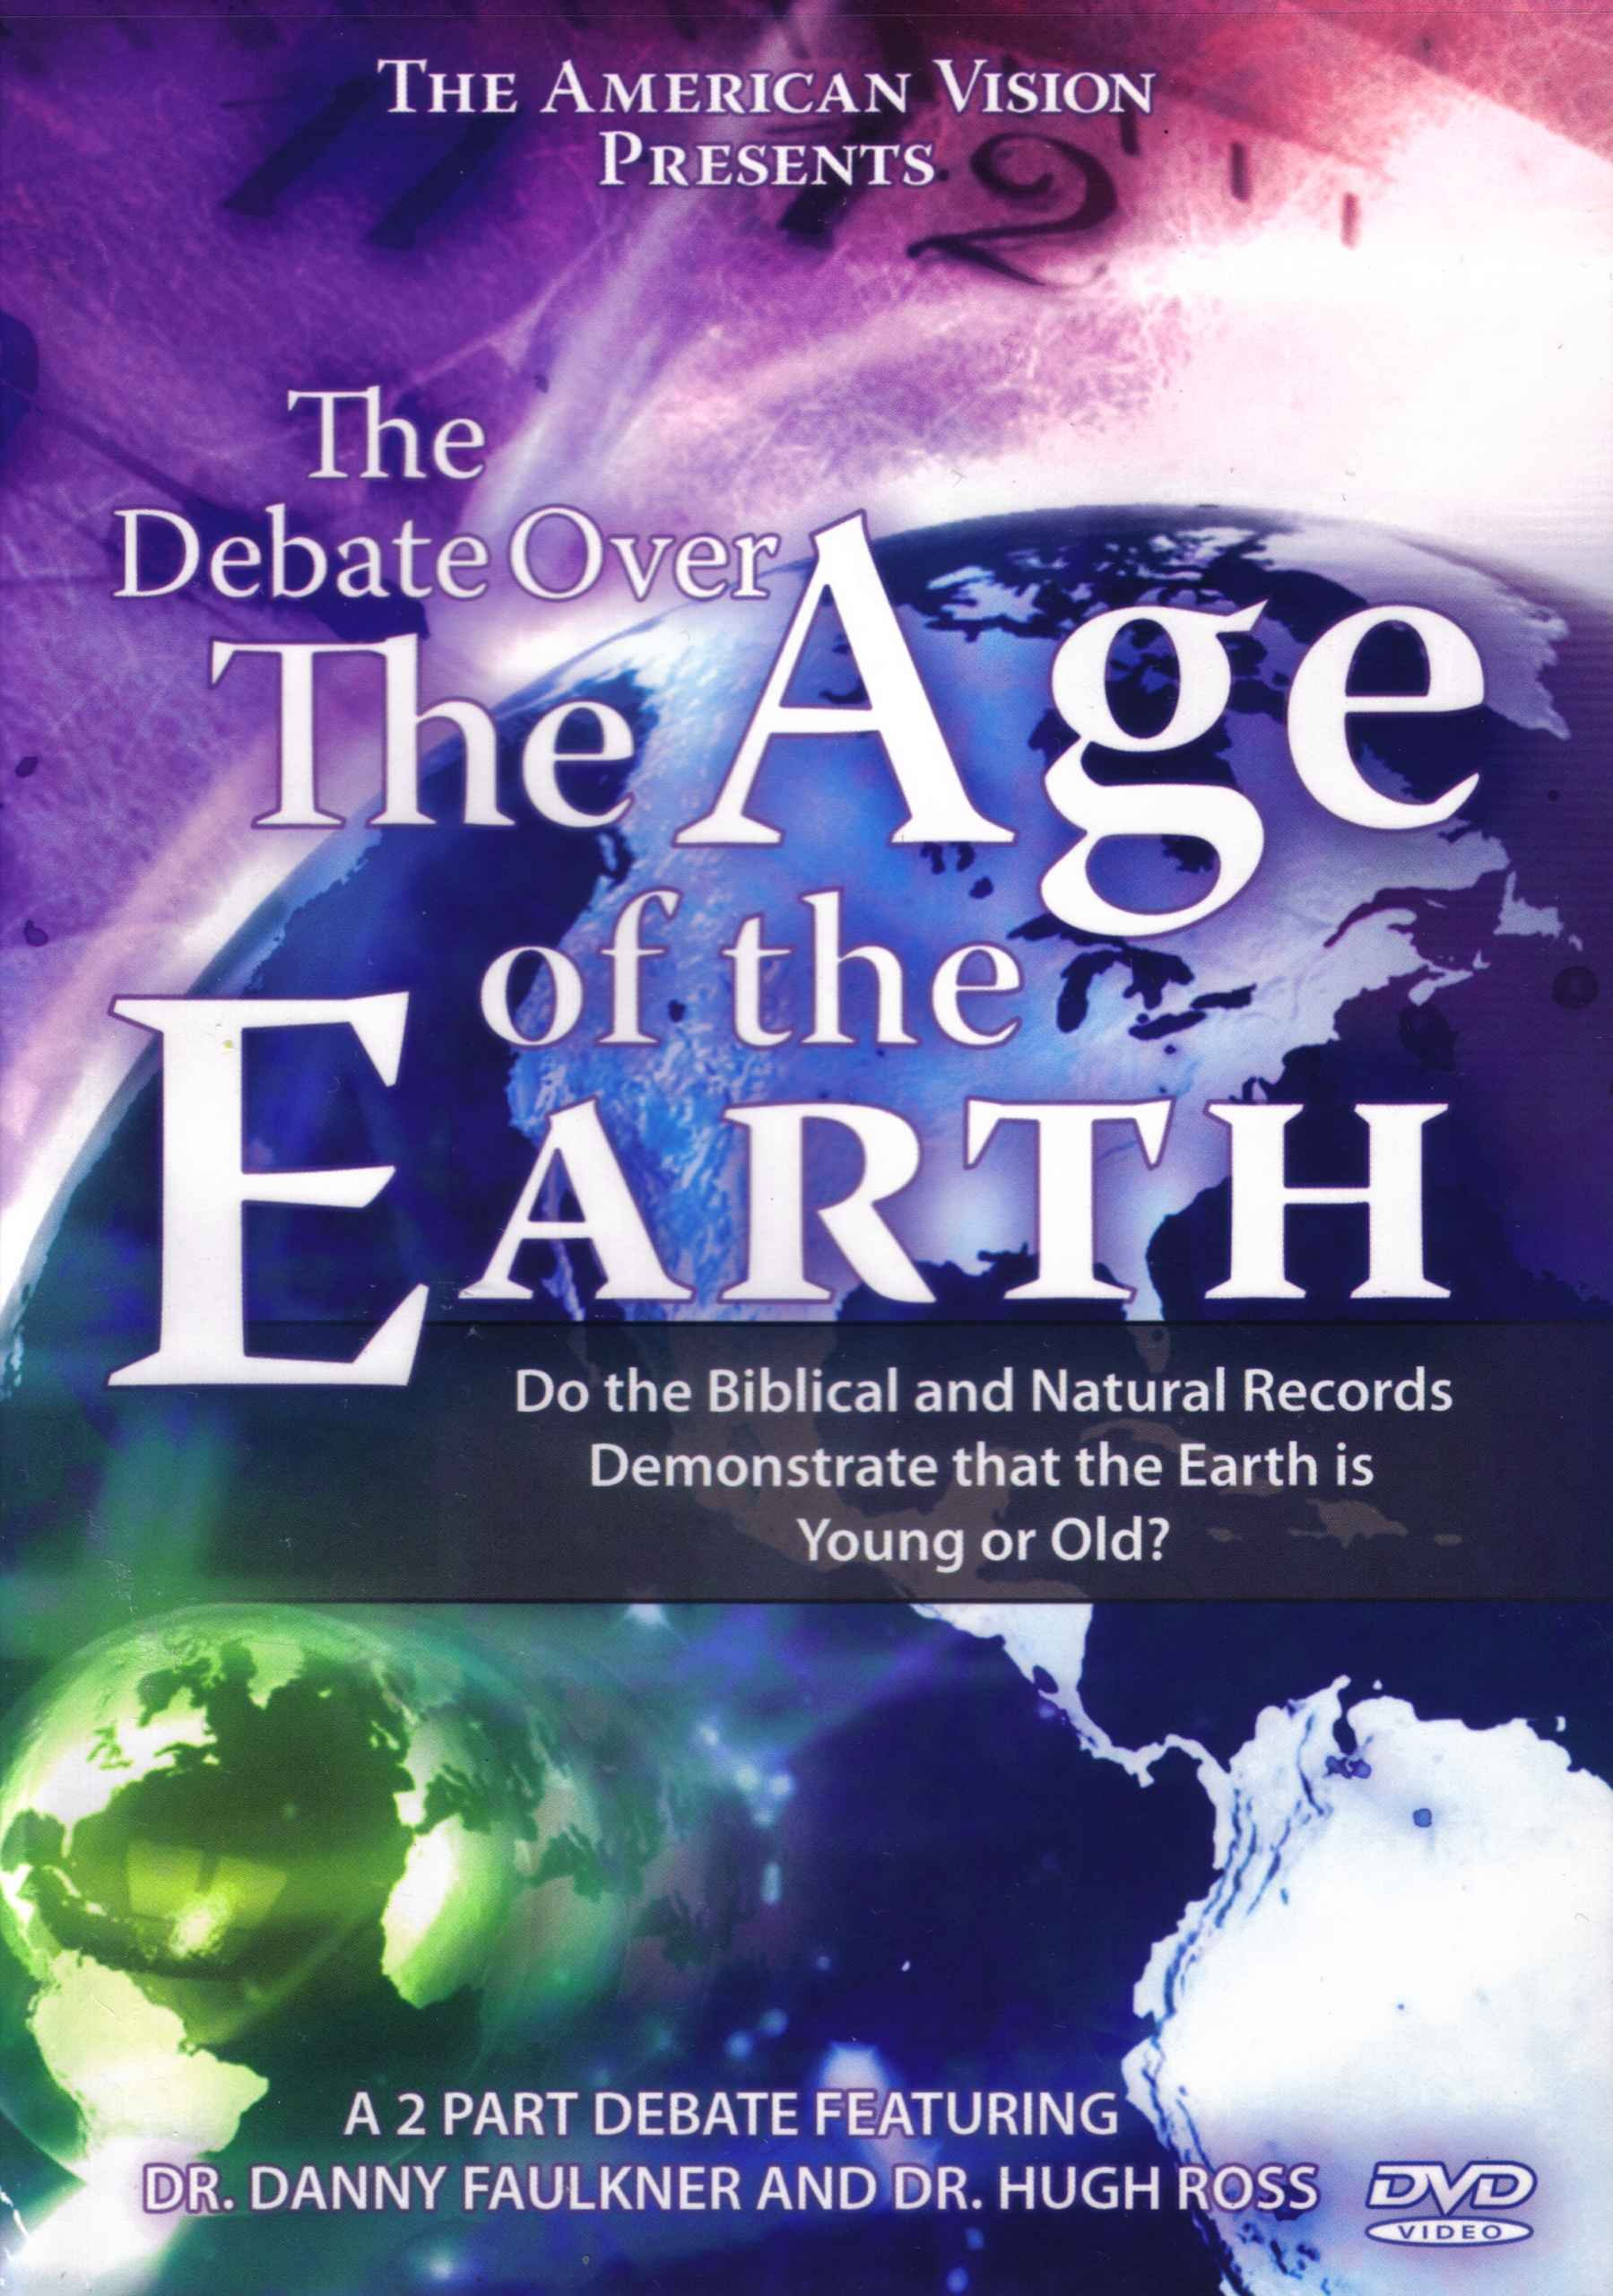 Debate Over the Age of the Earth, The: Do the Biblical and Natural Records Demonstrate that the Earth is Young or Old? (American Vision Presents) pdf